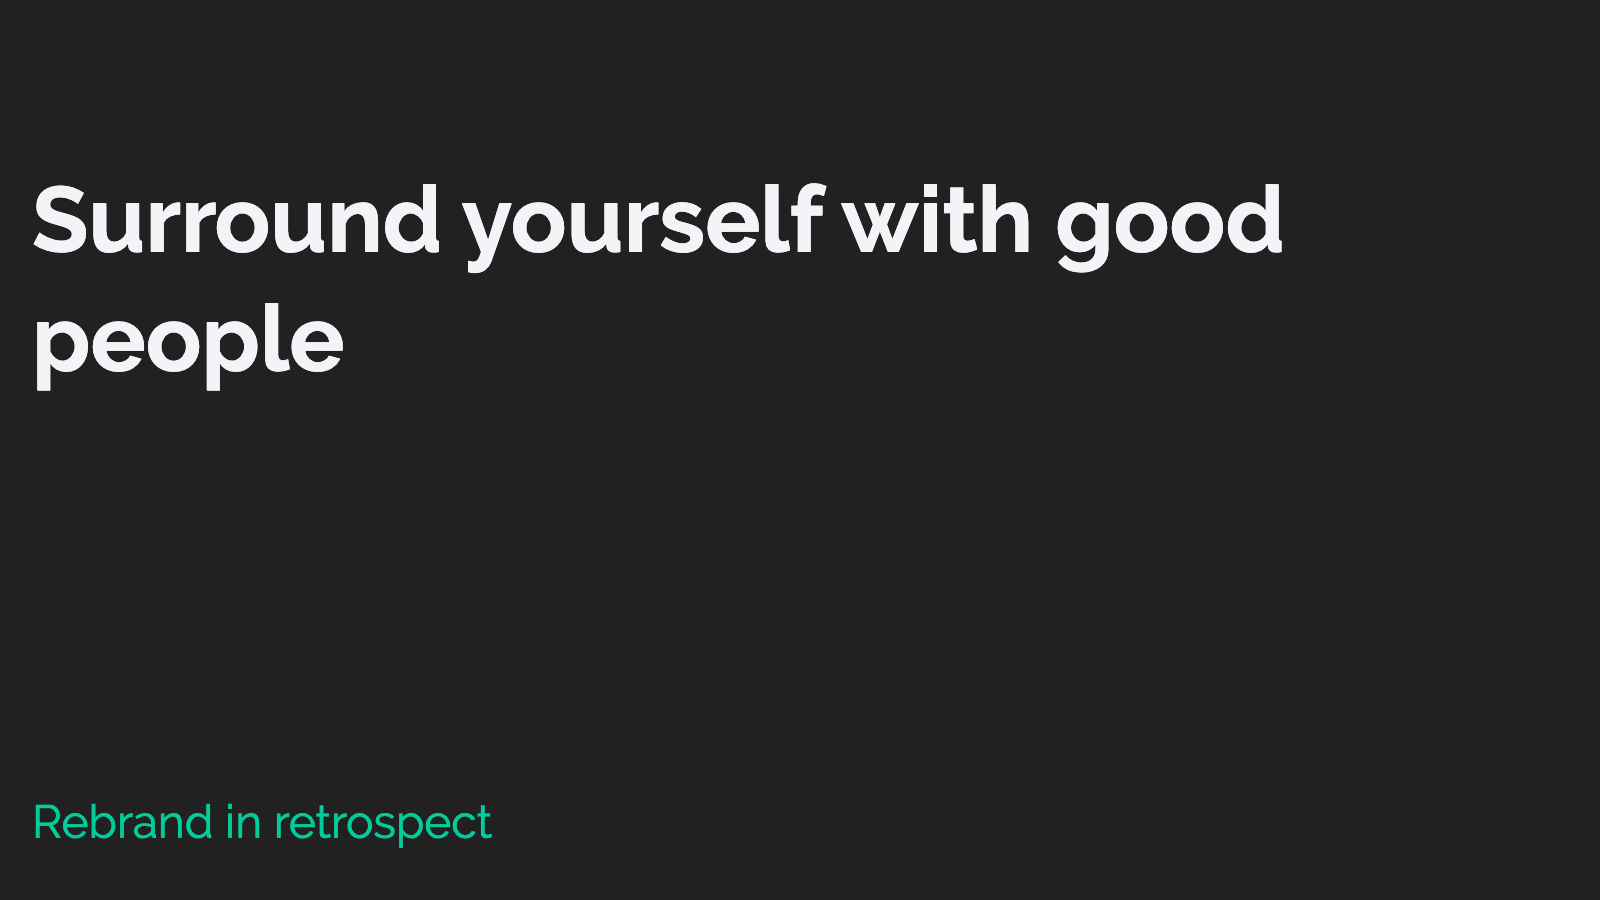 Slide content, Retrospective: Surround yourself with good people.